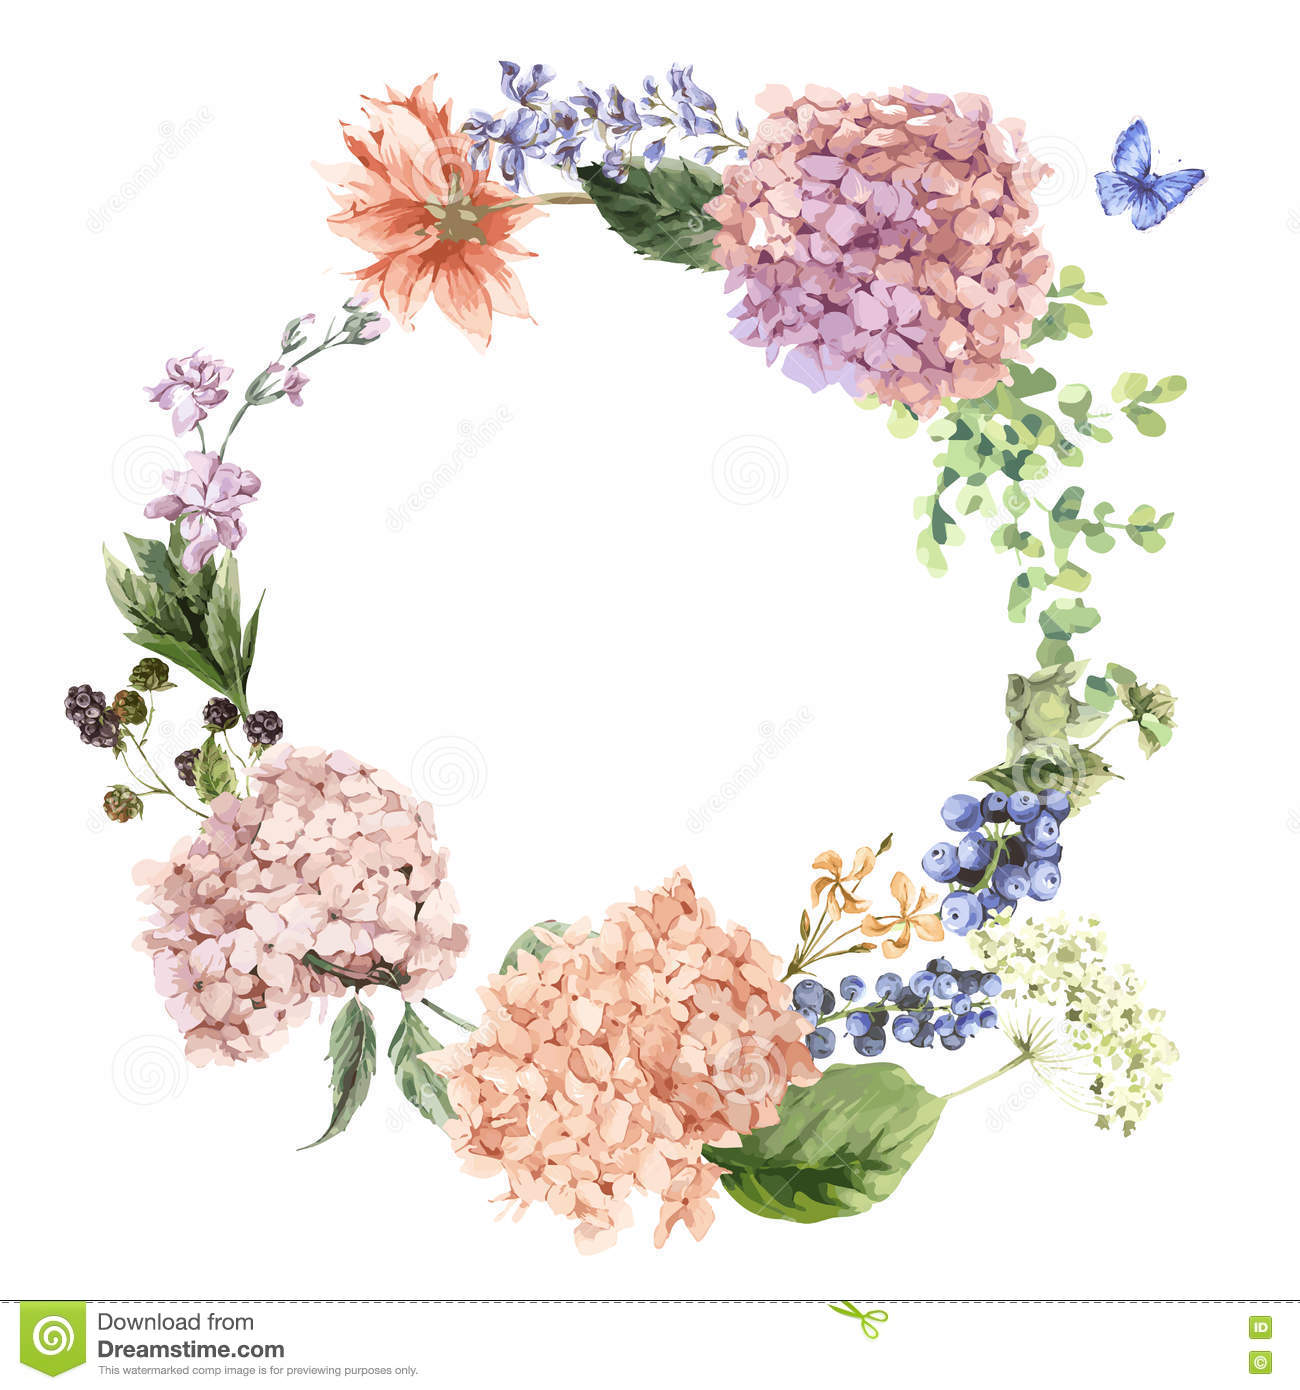 Floral Greeting Card With Blooming Hydrangea And Garden Flowers Stock Vector   Image  73697817